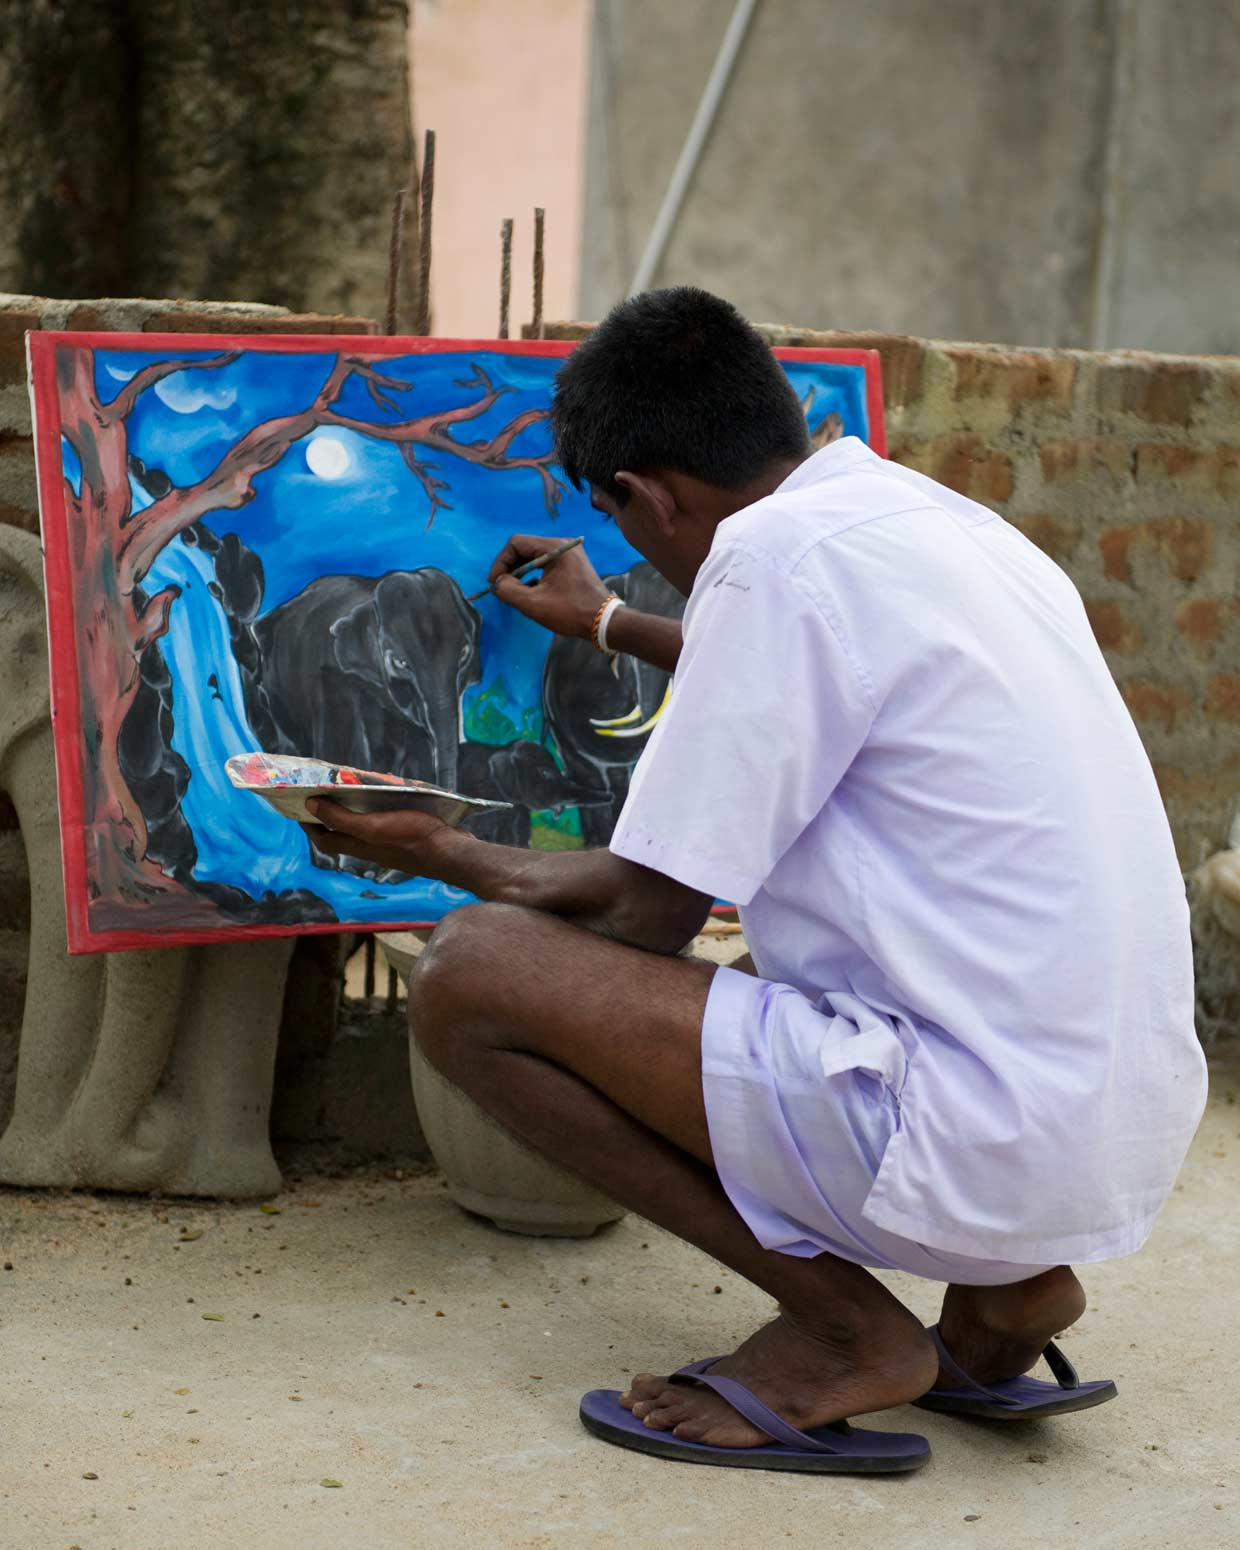 Harnessing the creativity of prison inmates in an effort to support a balanced rehabilitation process. An initiative of the MJF Charitable Foundation carried out in the Moneragala Prison in south eastern Sri Lanka.